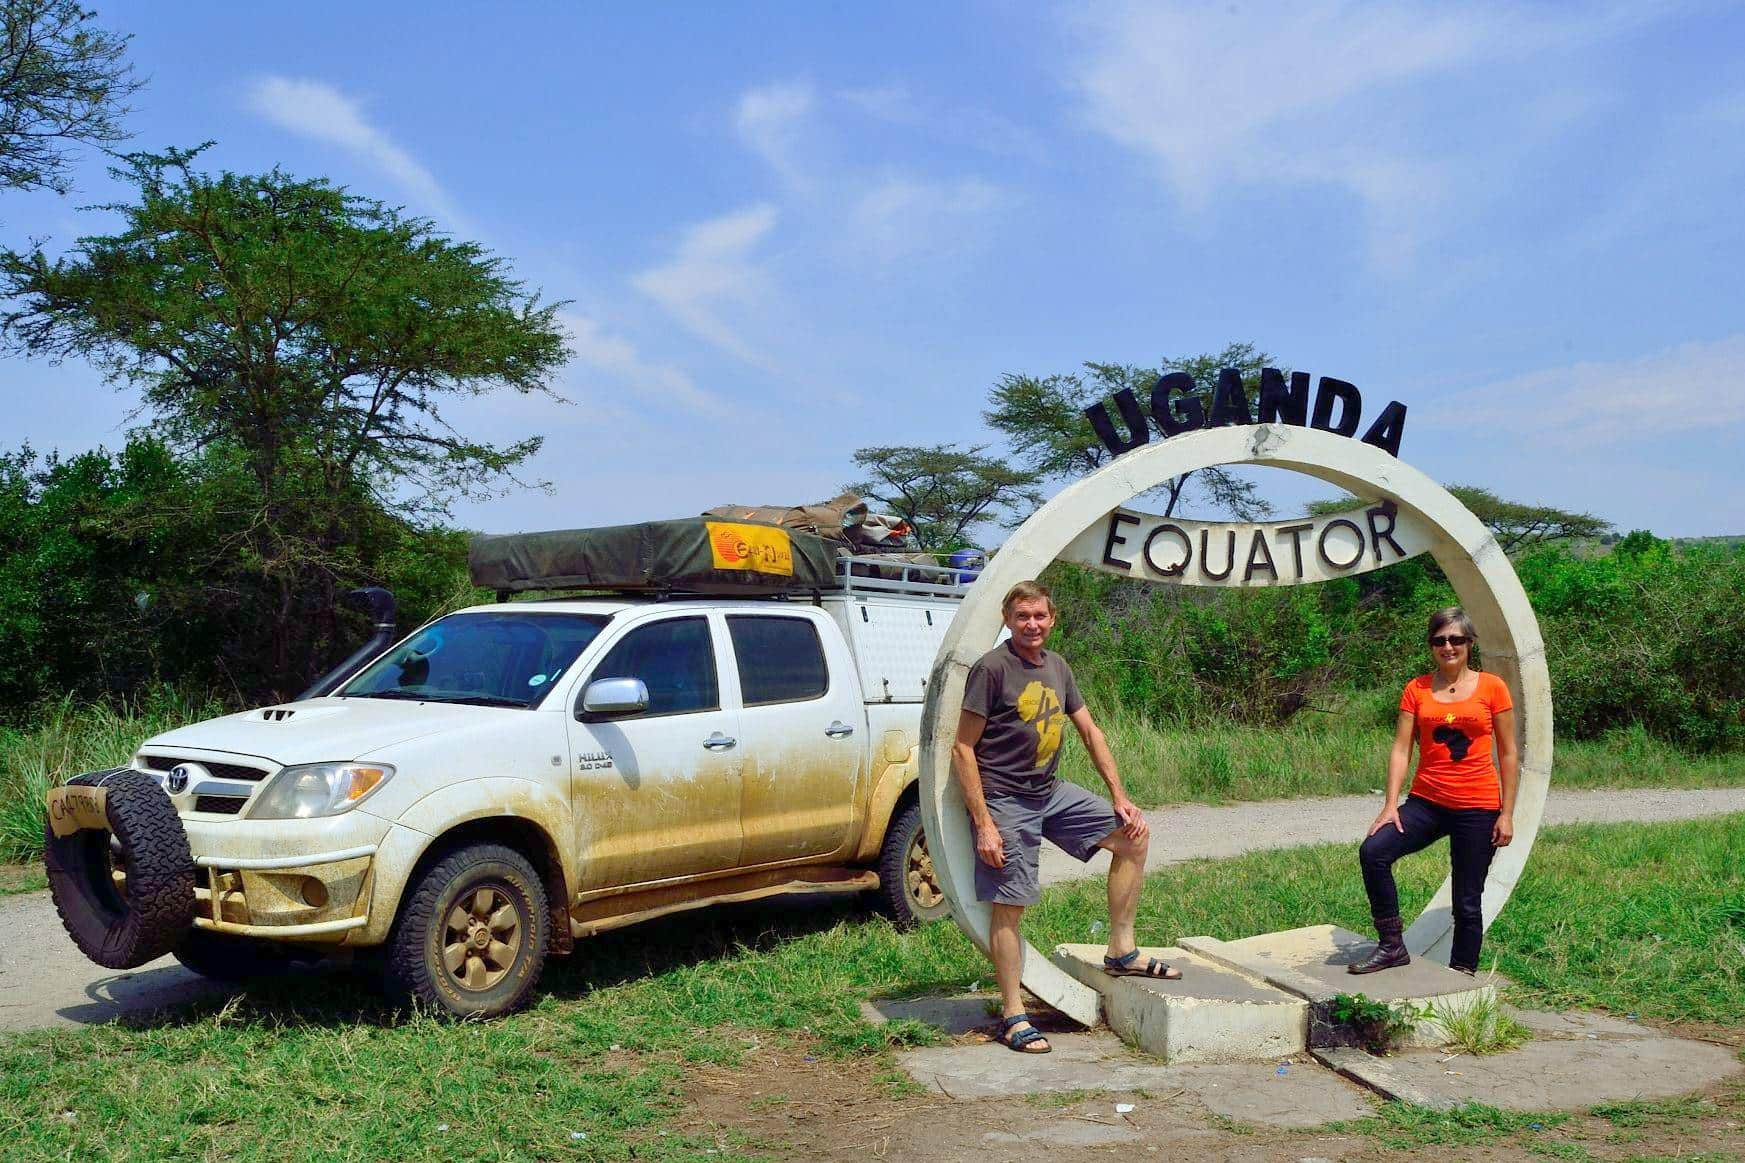 On the equator in Uganda!